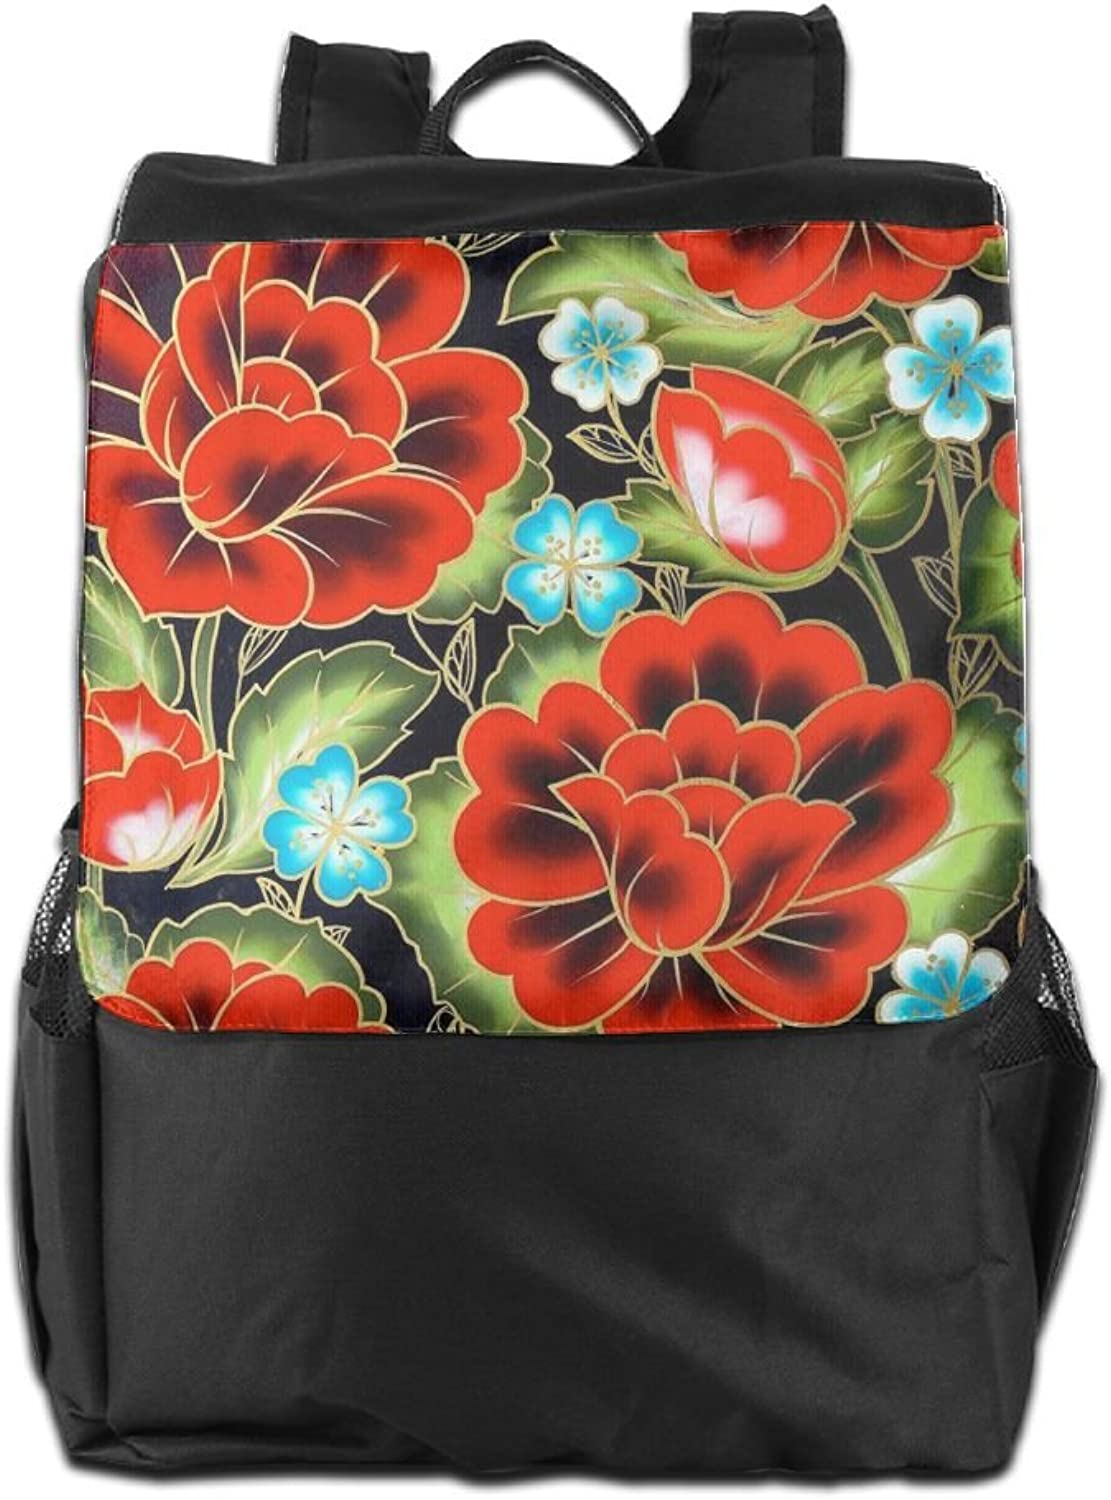 HSVCUY Personalized Outdoors Backpack,Travel Camping School-rot Flowers Flowers Flowers Adjustable Shoulder Strap Storage Dayback for damen and Men B07FYXX5PJ  Ausgezeichnete Qualität b7bf96